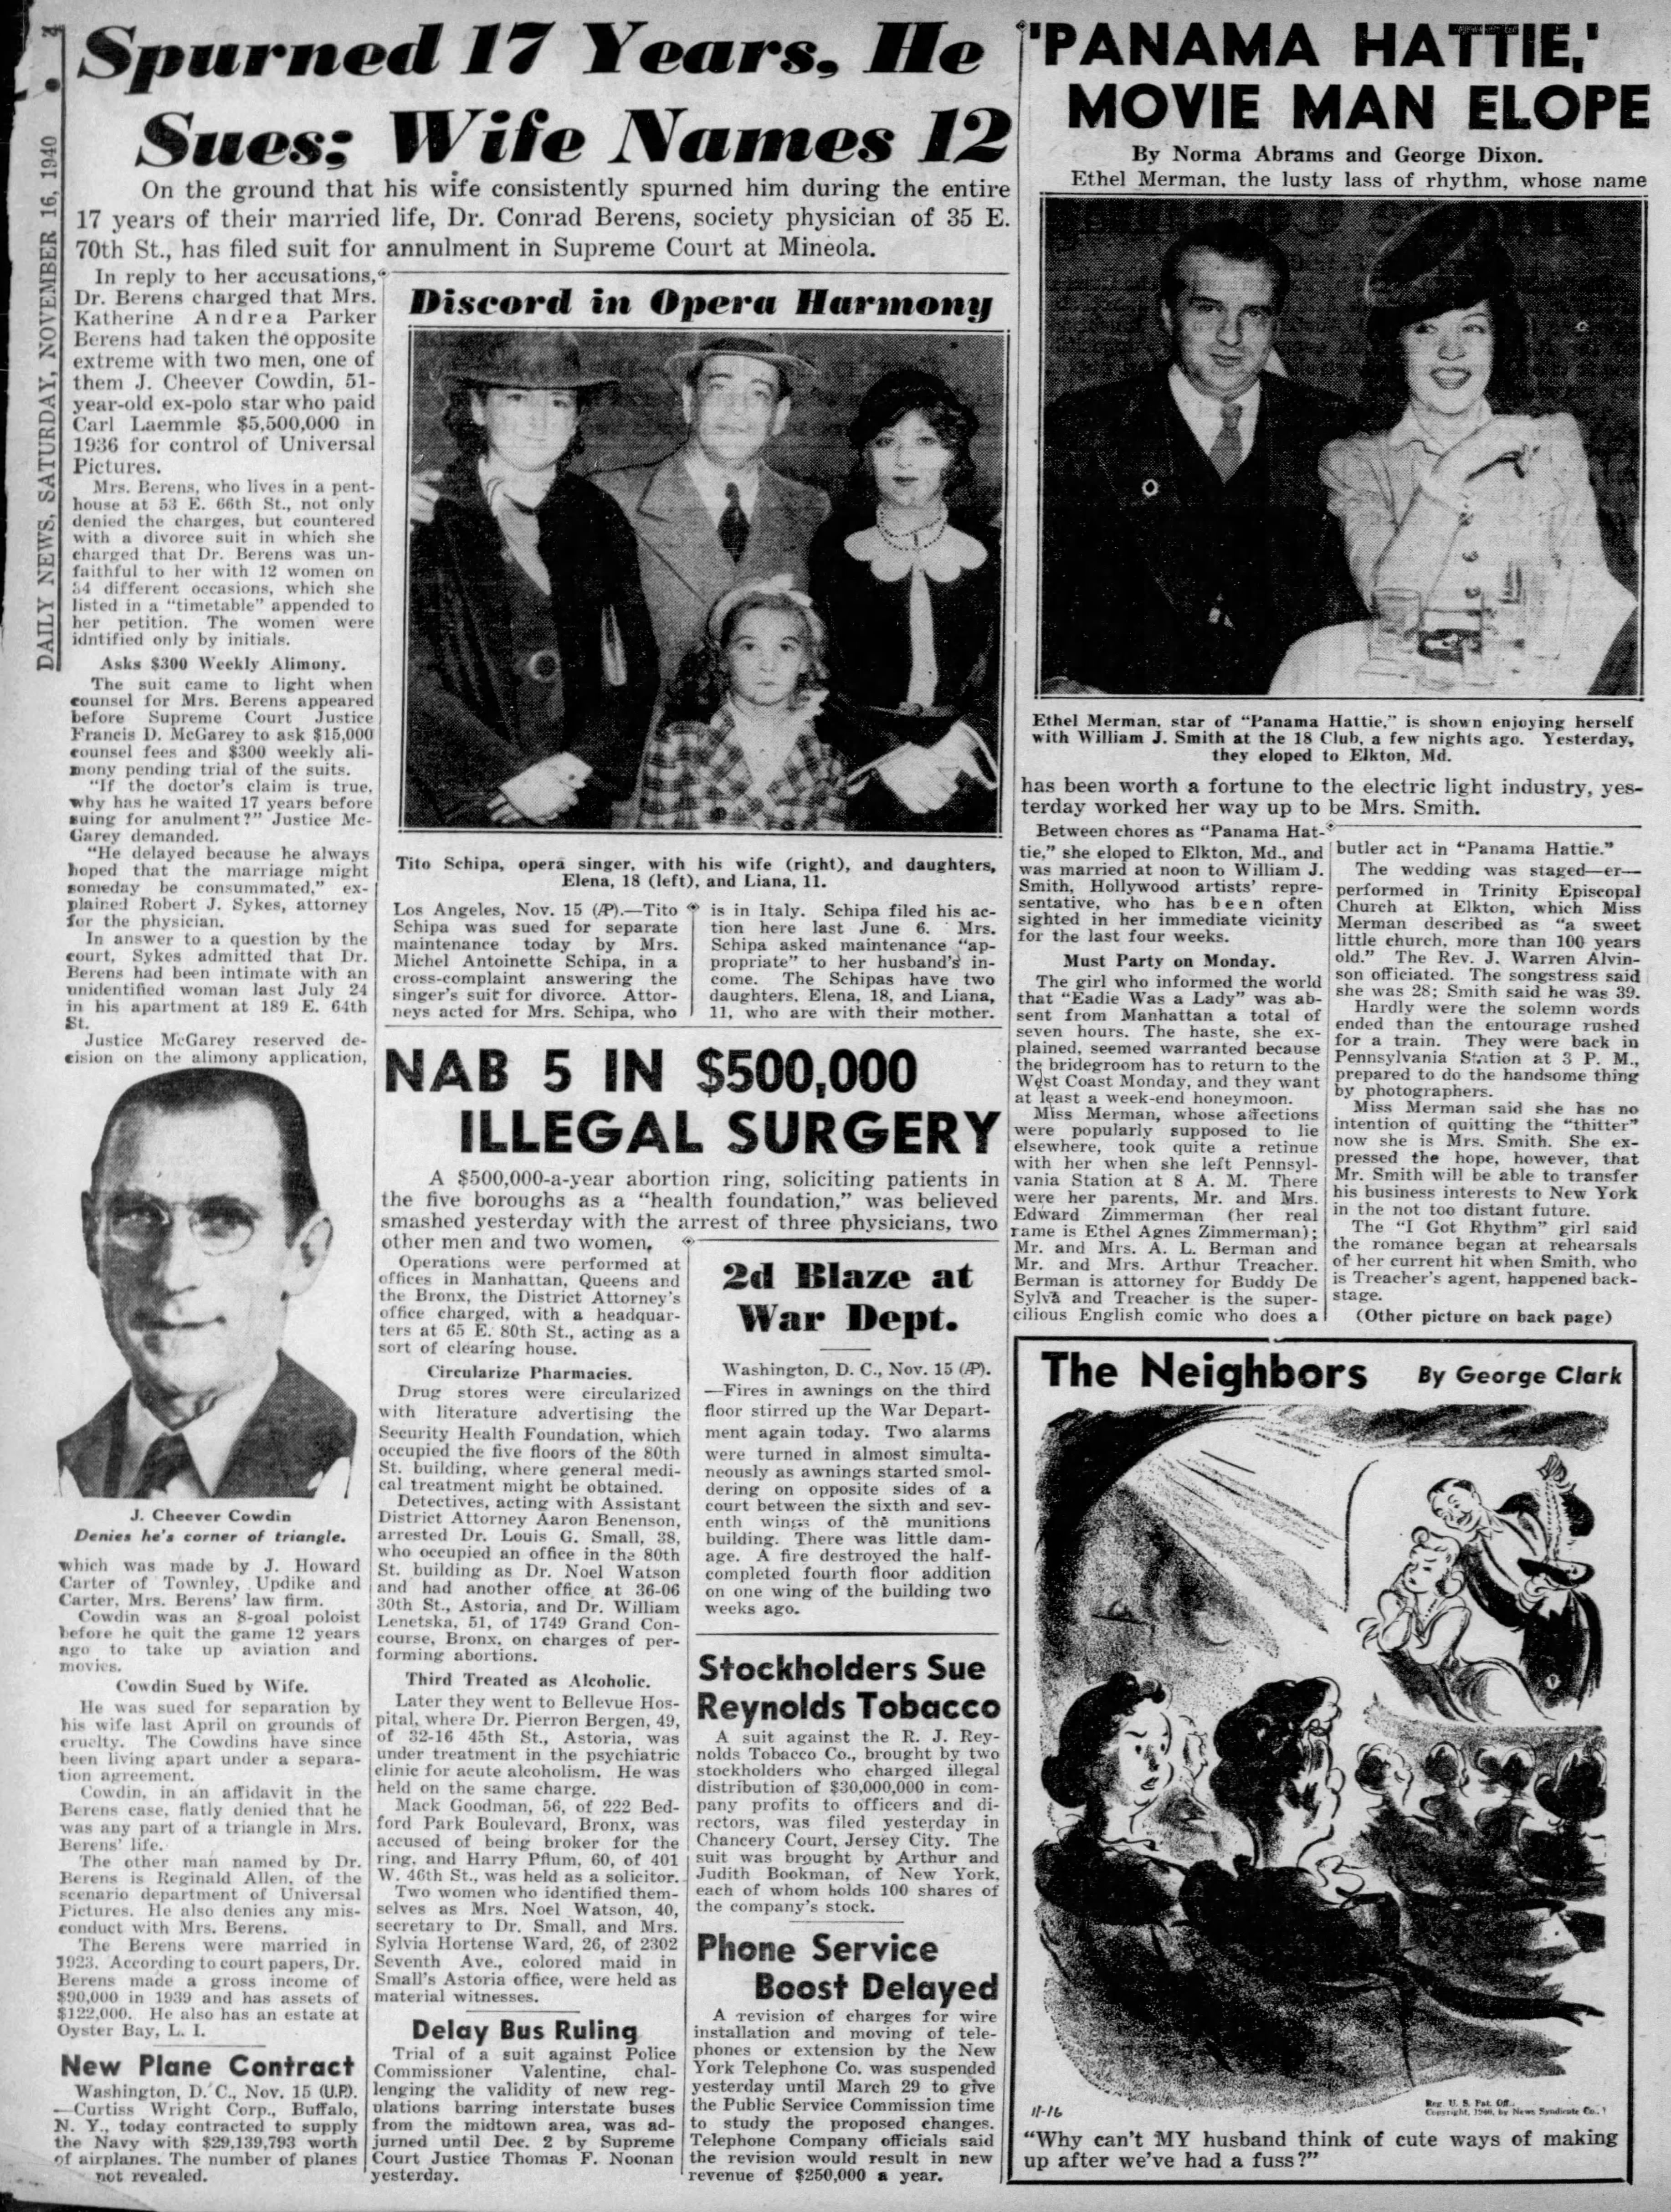 Daily_News_Sat__Nov_16__1940_.jpg